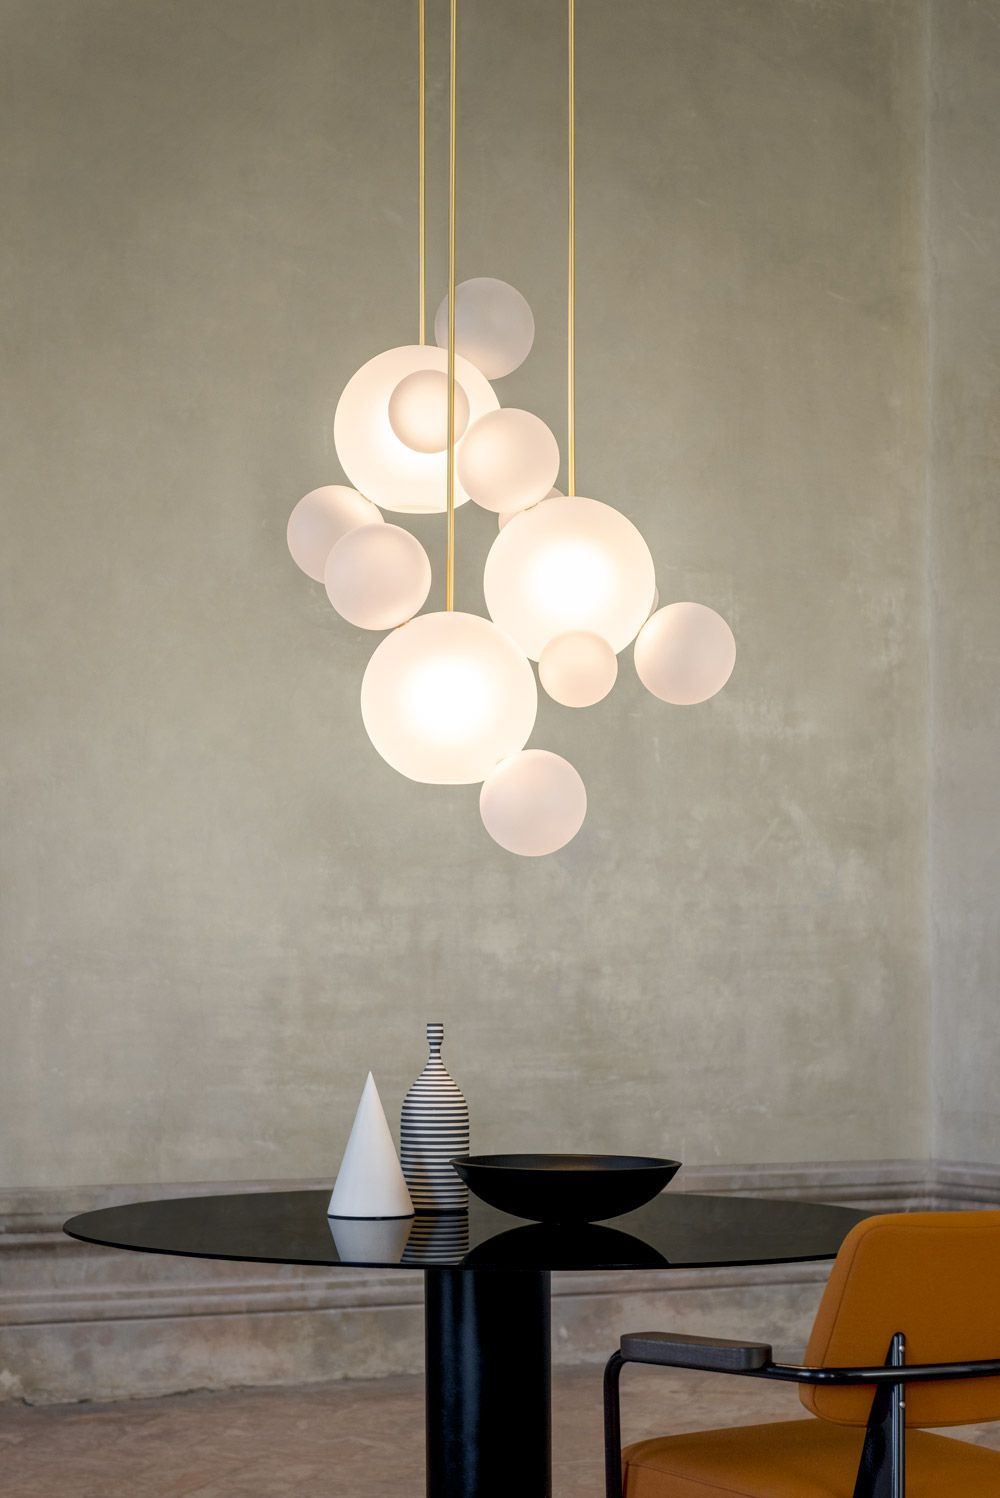 Giopatocoombes_Ph_Nathalie_Krag_2019_Bolle Circular Chandelier 14 Bubbles #bubblekronleuchter